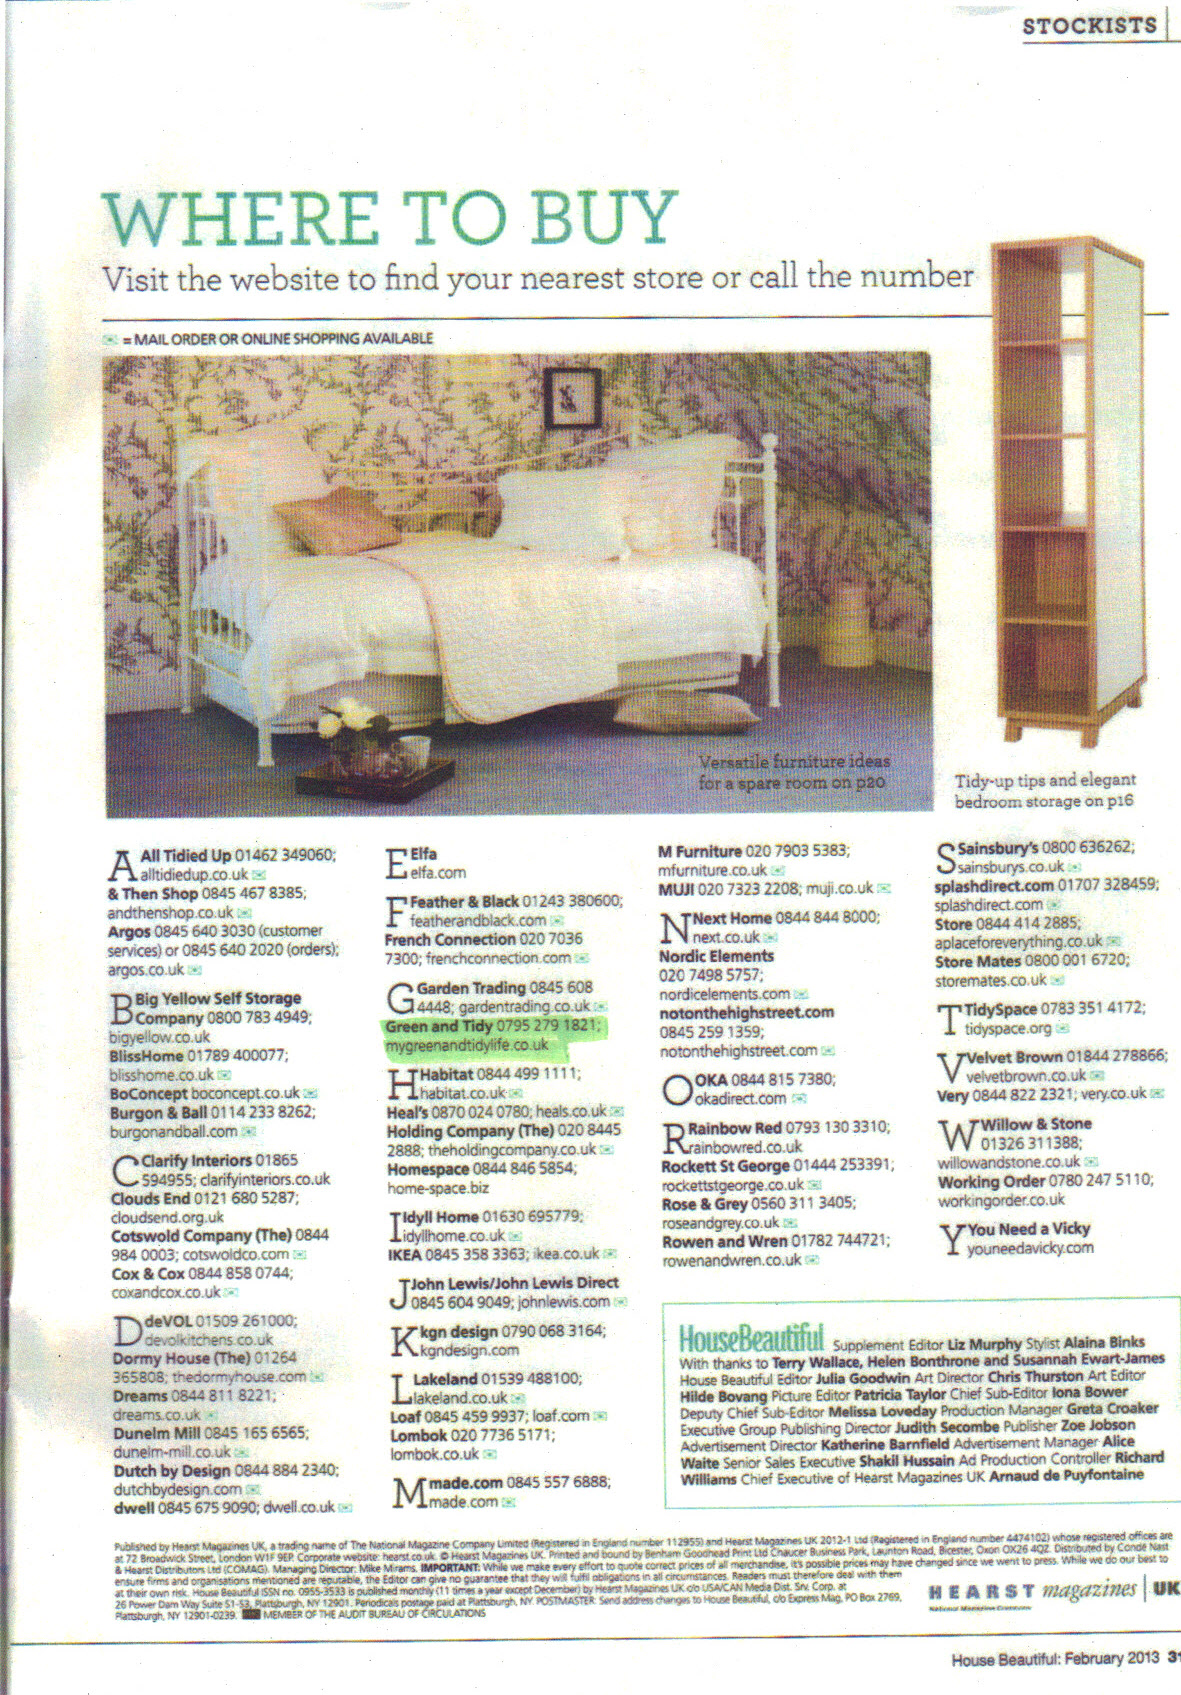 House Beautiful Feb 2013 p31 -  highlight